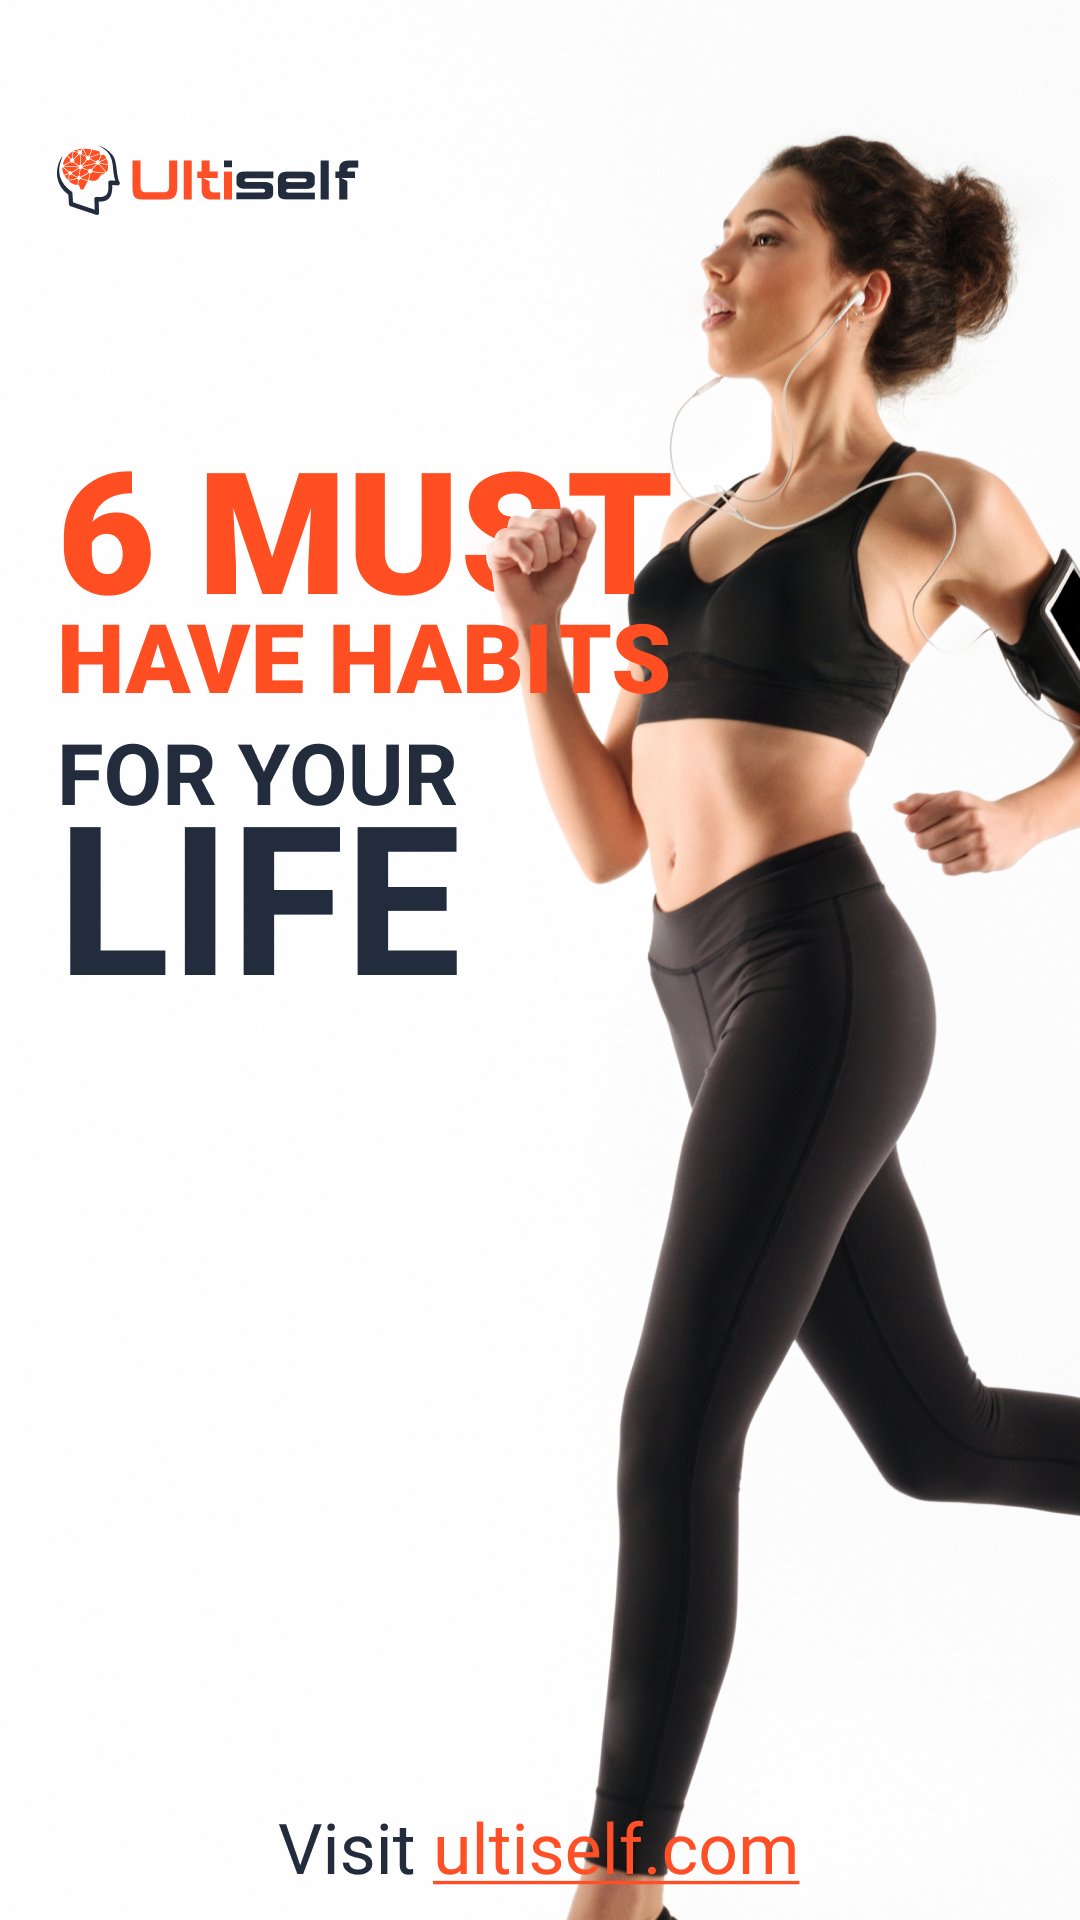 Every house needs a foundation. Here are the key habits that EVERYONE MUST HAVE in their daily routine in order to have a good well balanced life. Here's a routine with the fundamental habits for a well balanced life. #healthyhabits #fitnessmotivation #fitnessgoals #workout #workoutplan #coreworkout #core #corestregtheningexercises #musclefitness #musclegrowth #healthylifestyle #healthyeating #gymworkouts #biohacks #healthyhabits